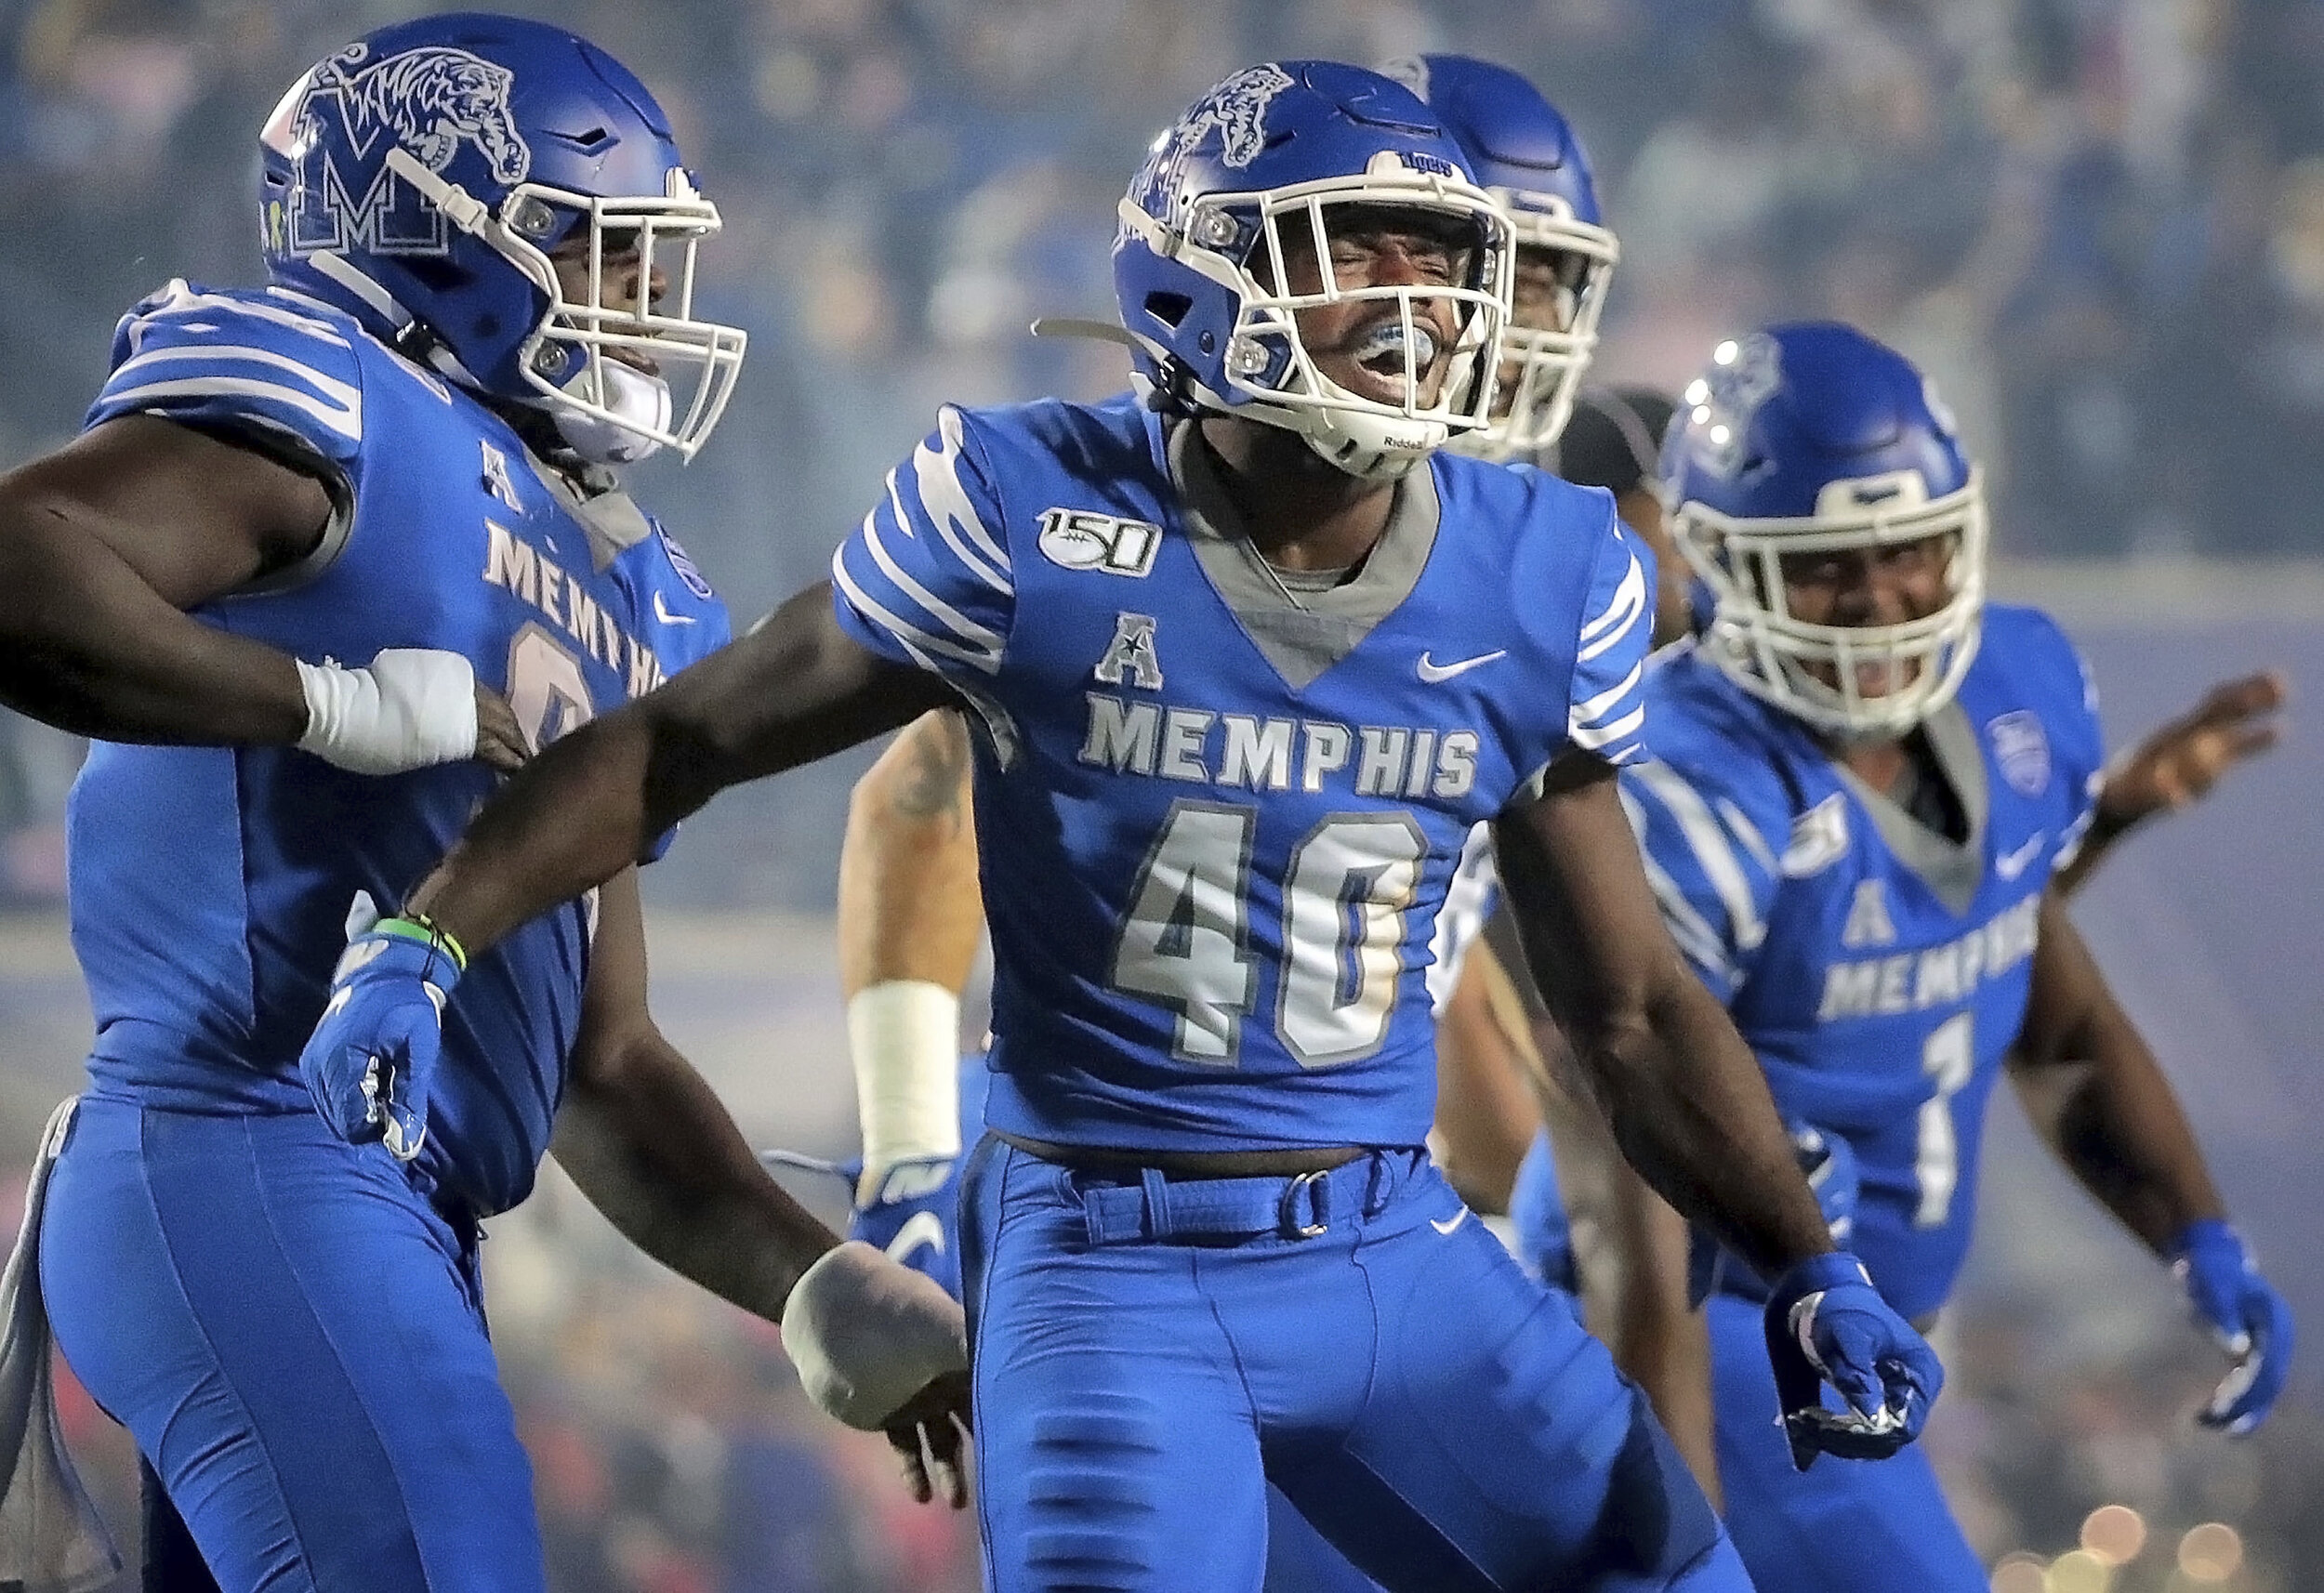 Memphis also moved to 6-1 on the season after racking up a huge 47-17 victory over Tulane.  Photo from the Associated Press.